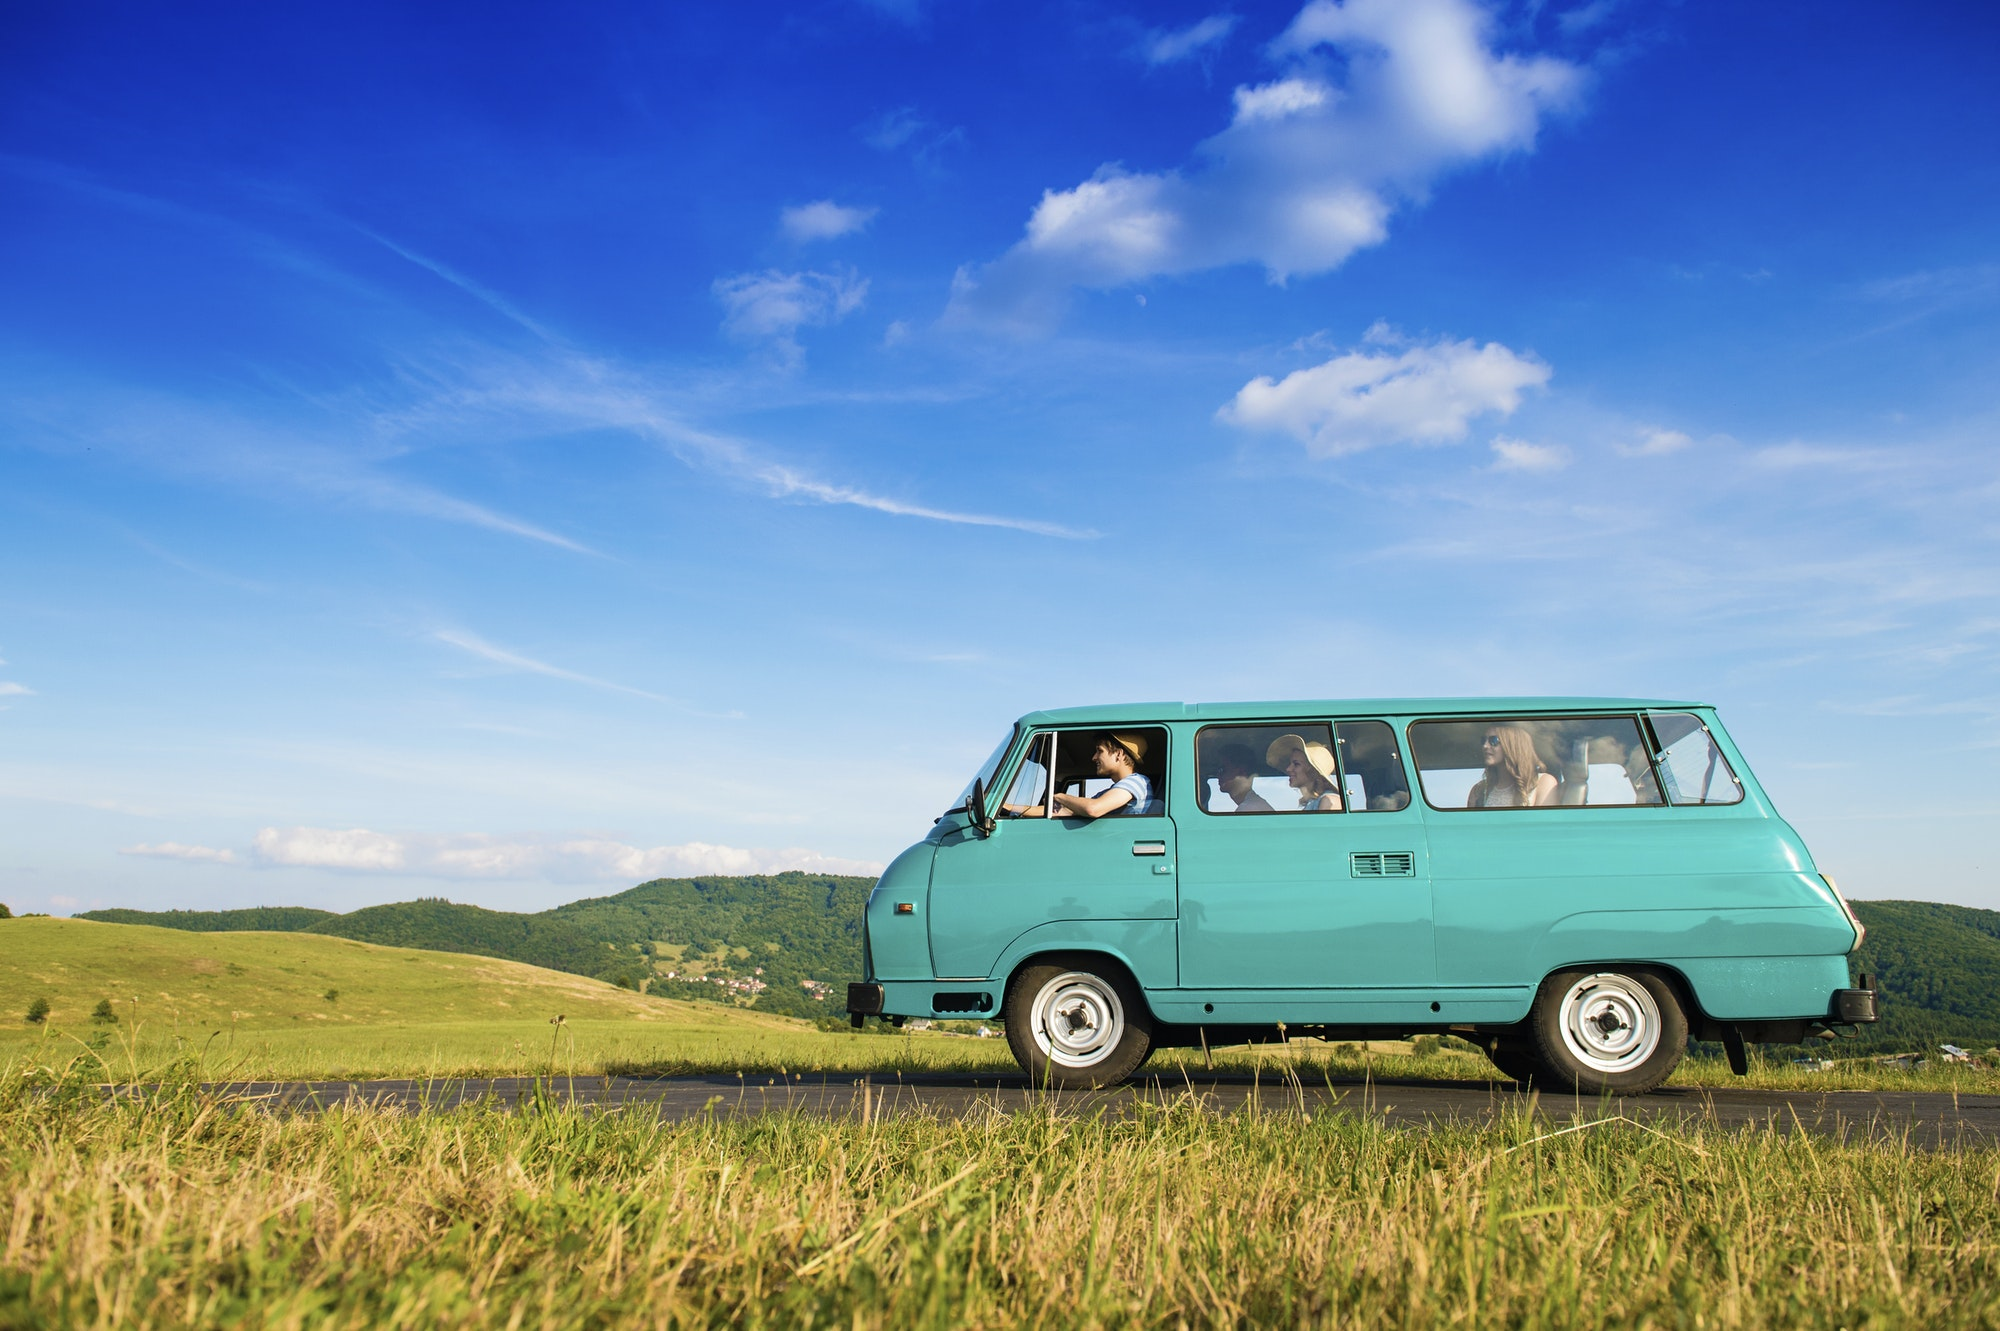 How To Prepare Your Old Car For The Summer In St. Louis?